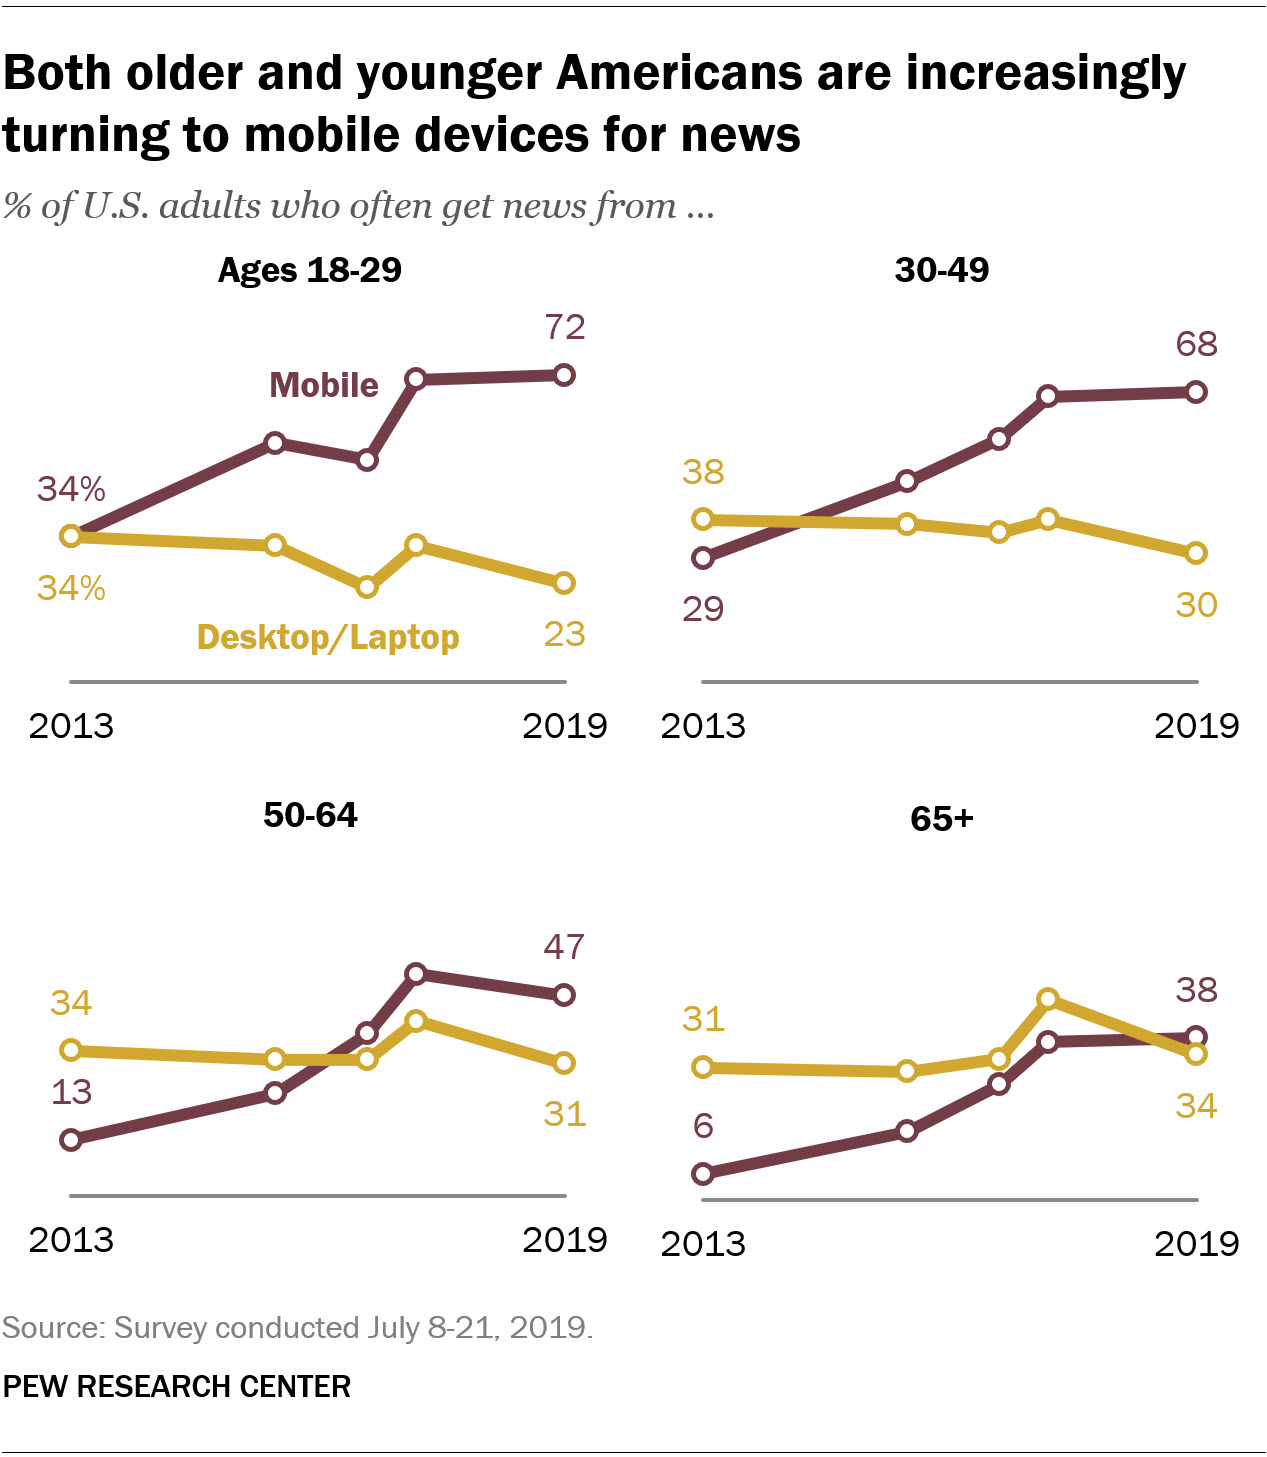 Both older and younger Americans are increasingly turning to mobile devices for news